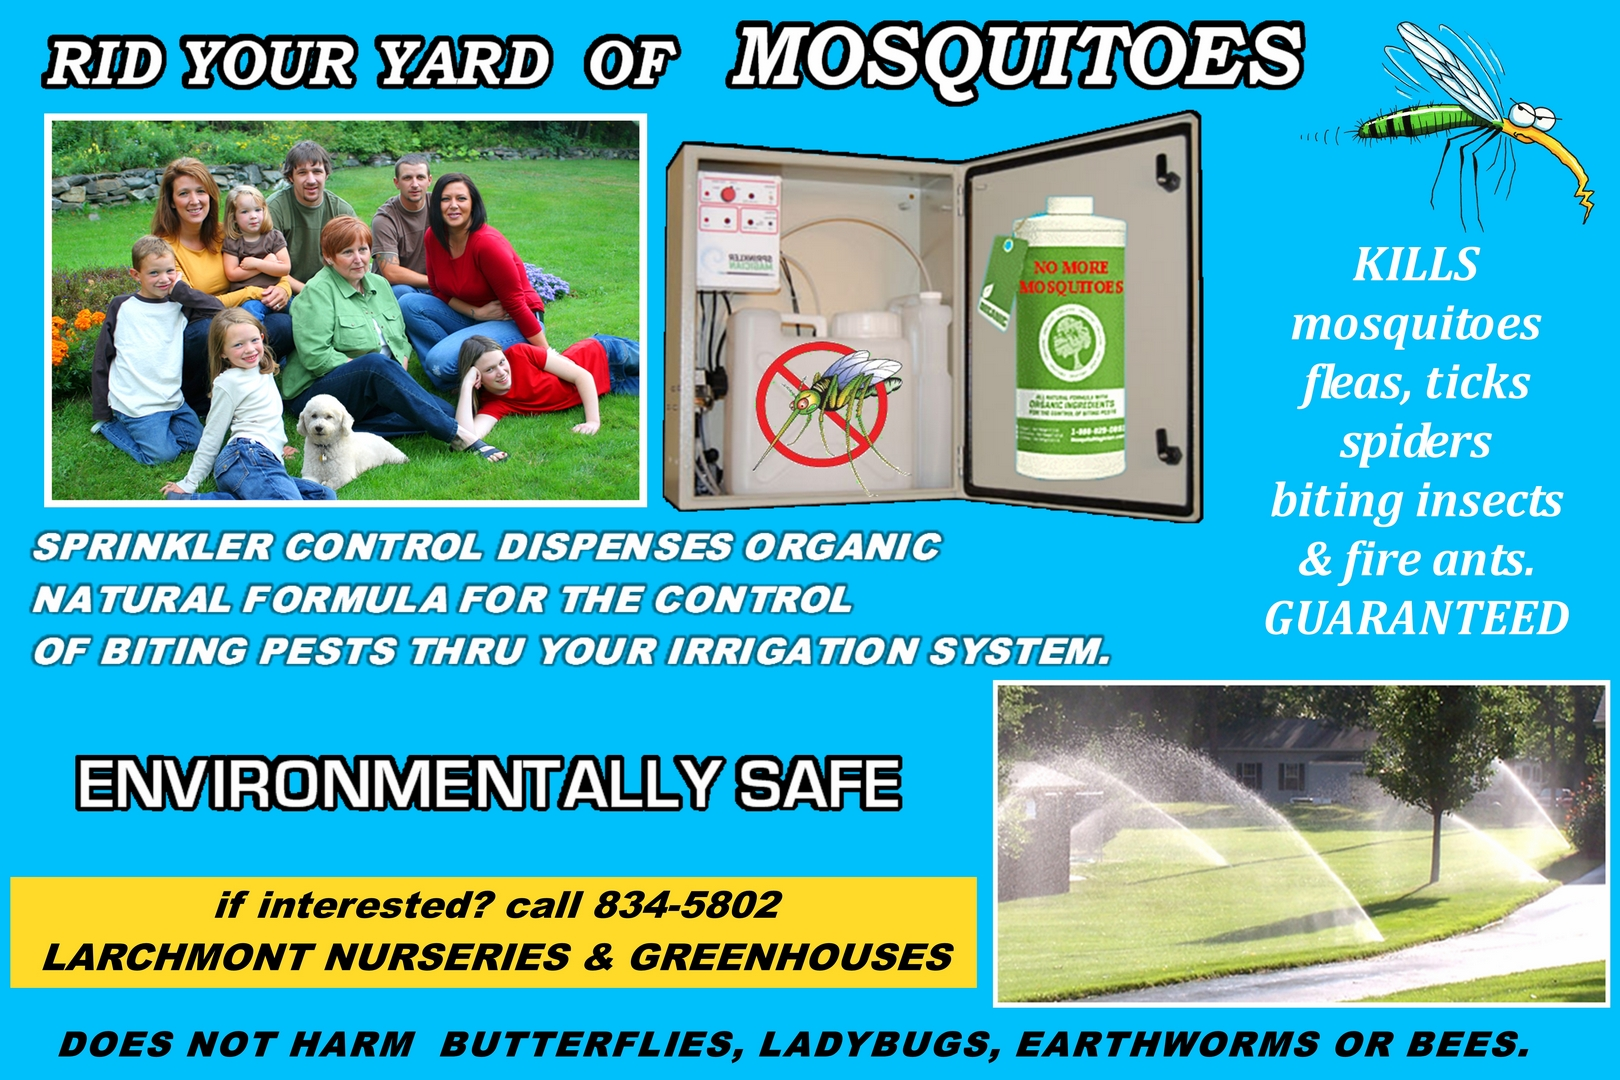 Rid Your Yard Of Mosquitoes. Larchmontnursery